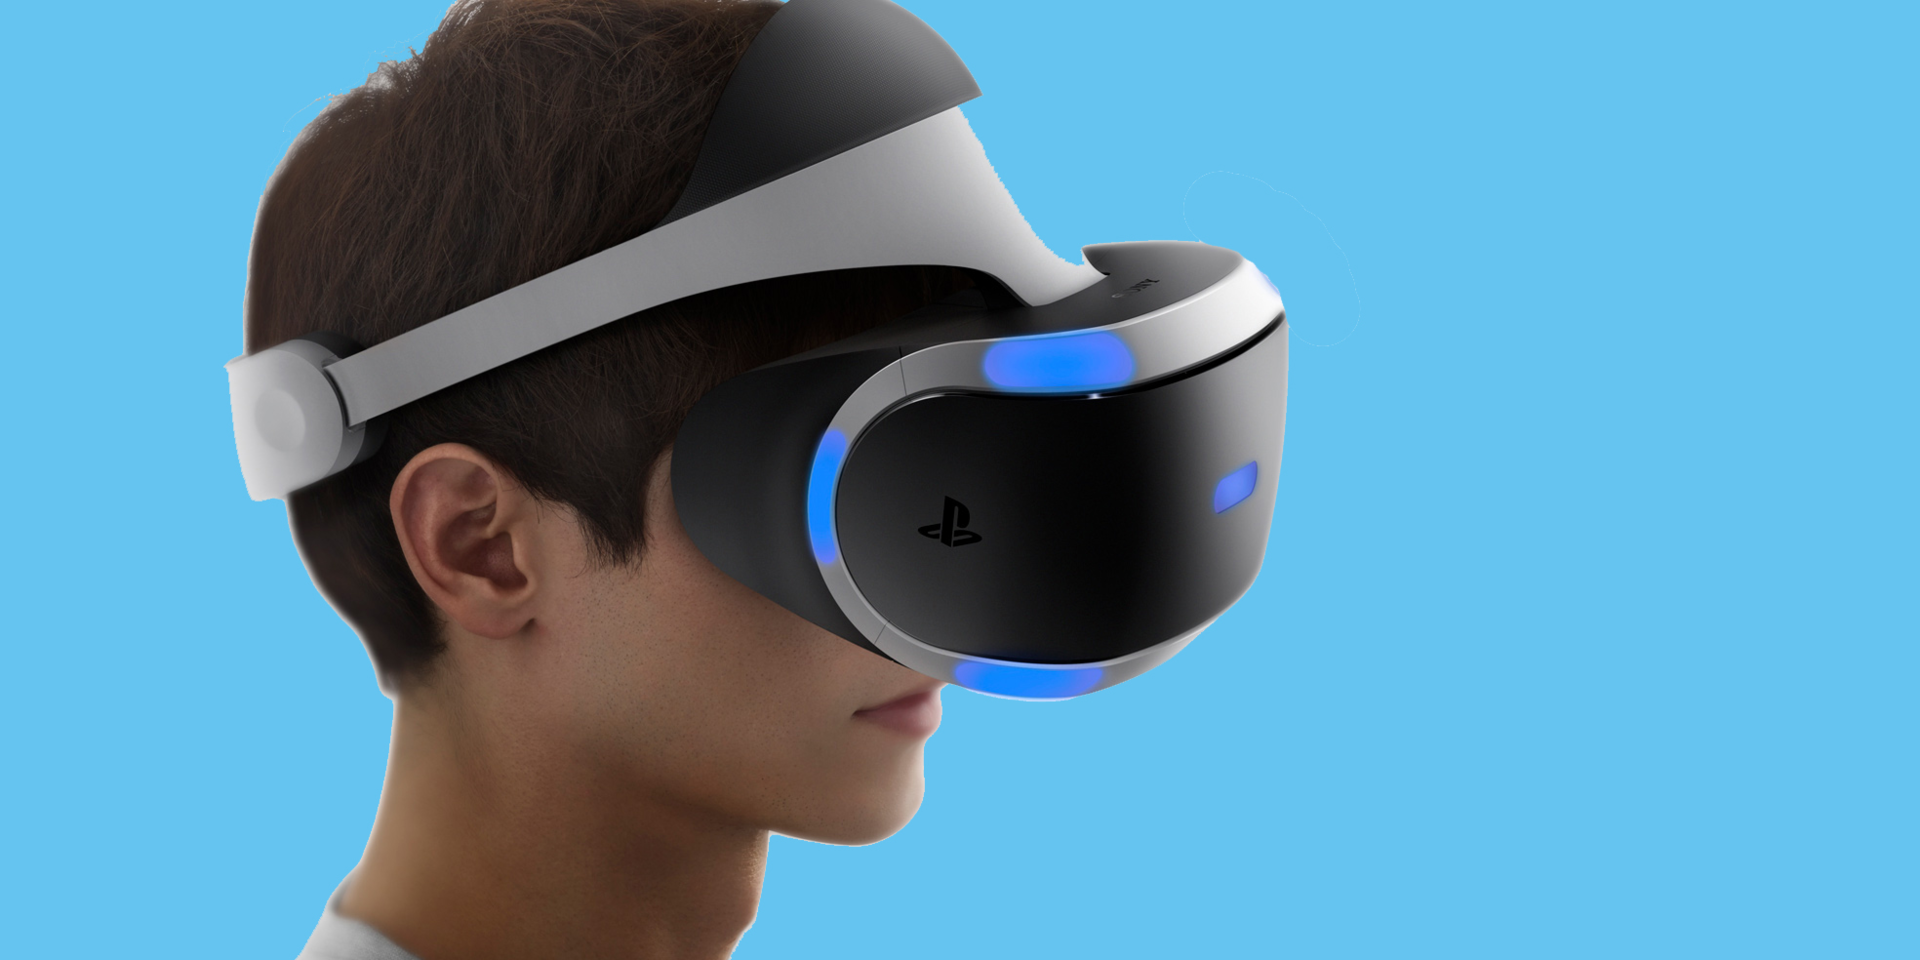 Playstation Vr Is My Favorite New Party Trick Playstation Vr Playstation Online Video Games